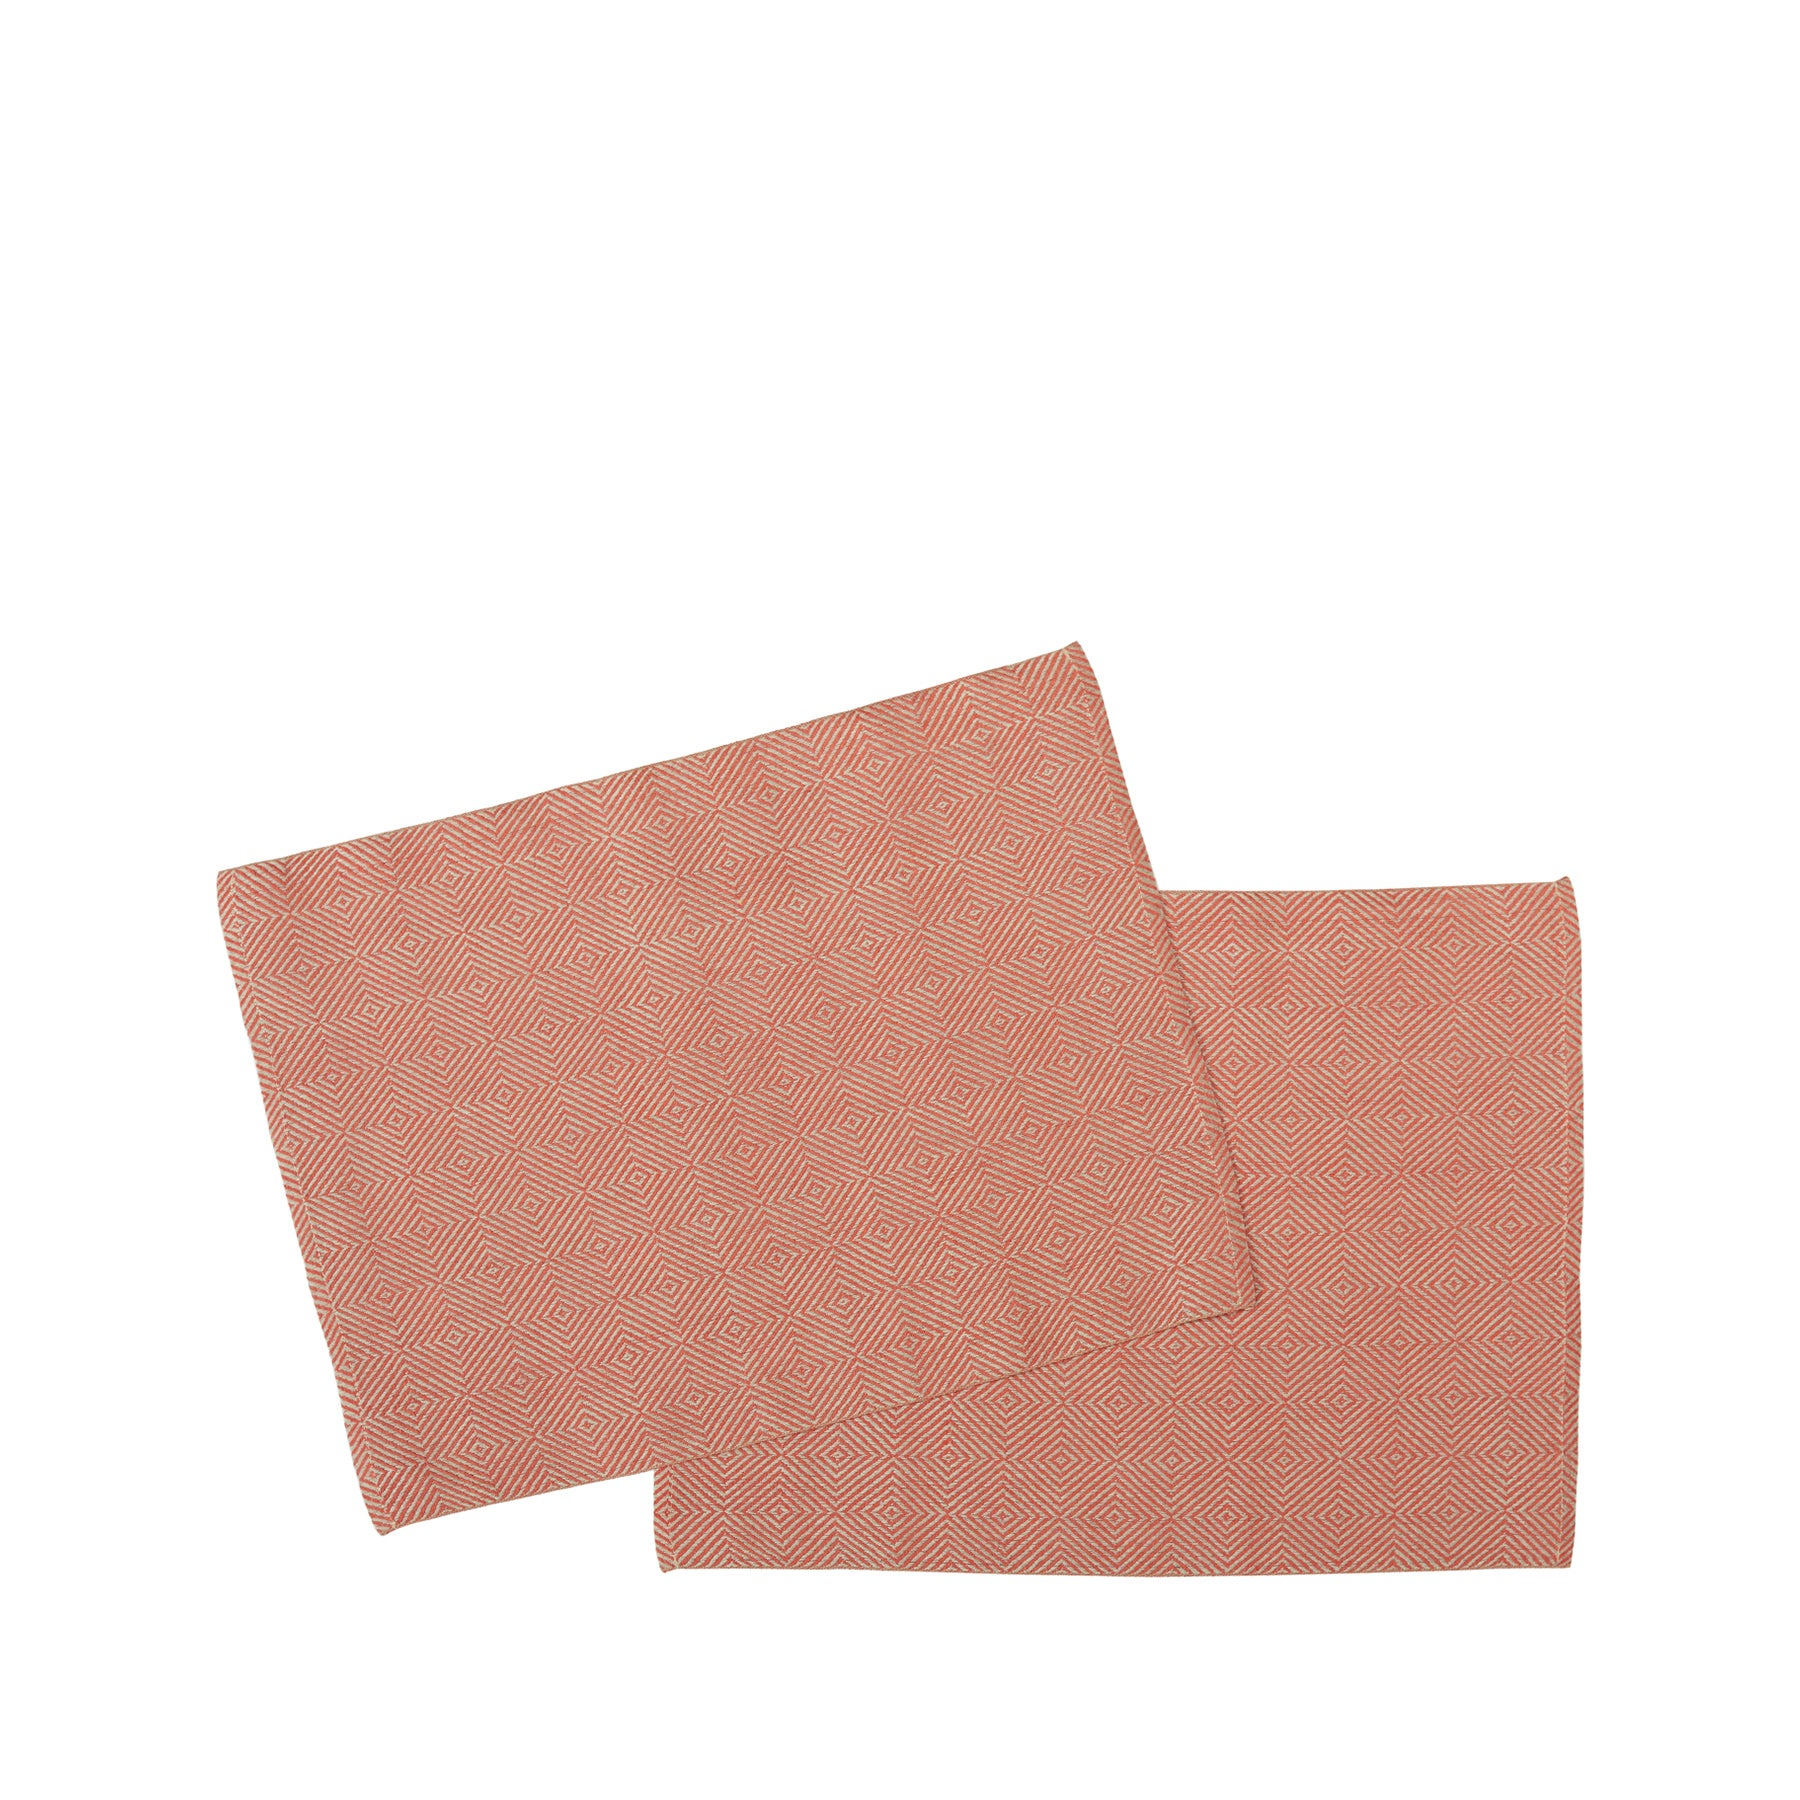 Rutig Strandrag Placemats in Brick Red (Set of 2) Zoom Image 1